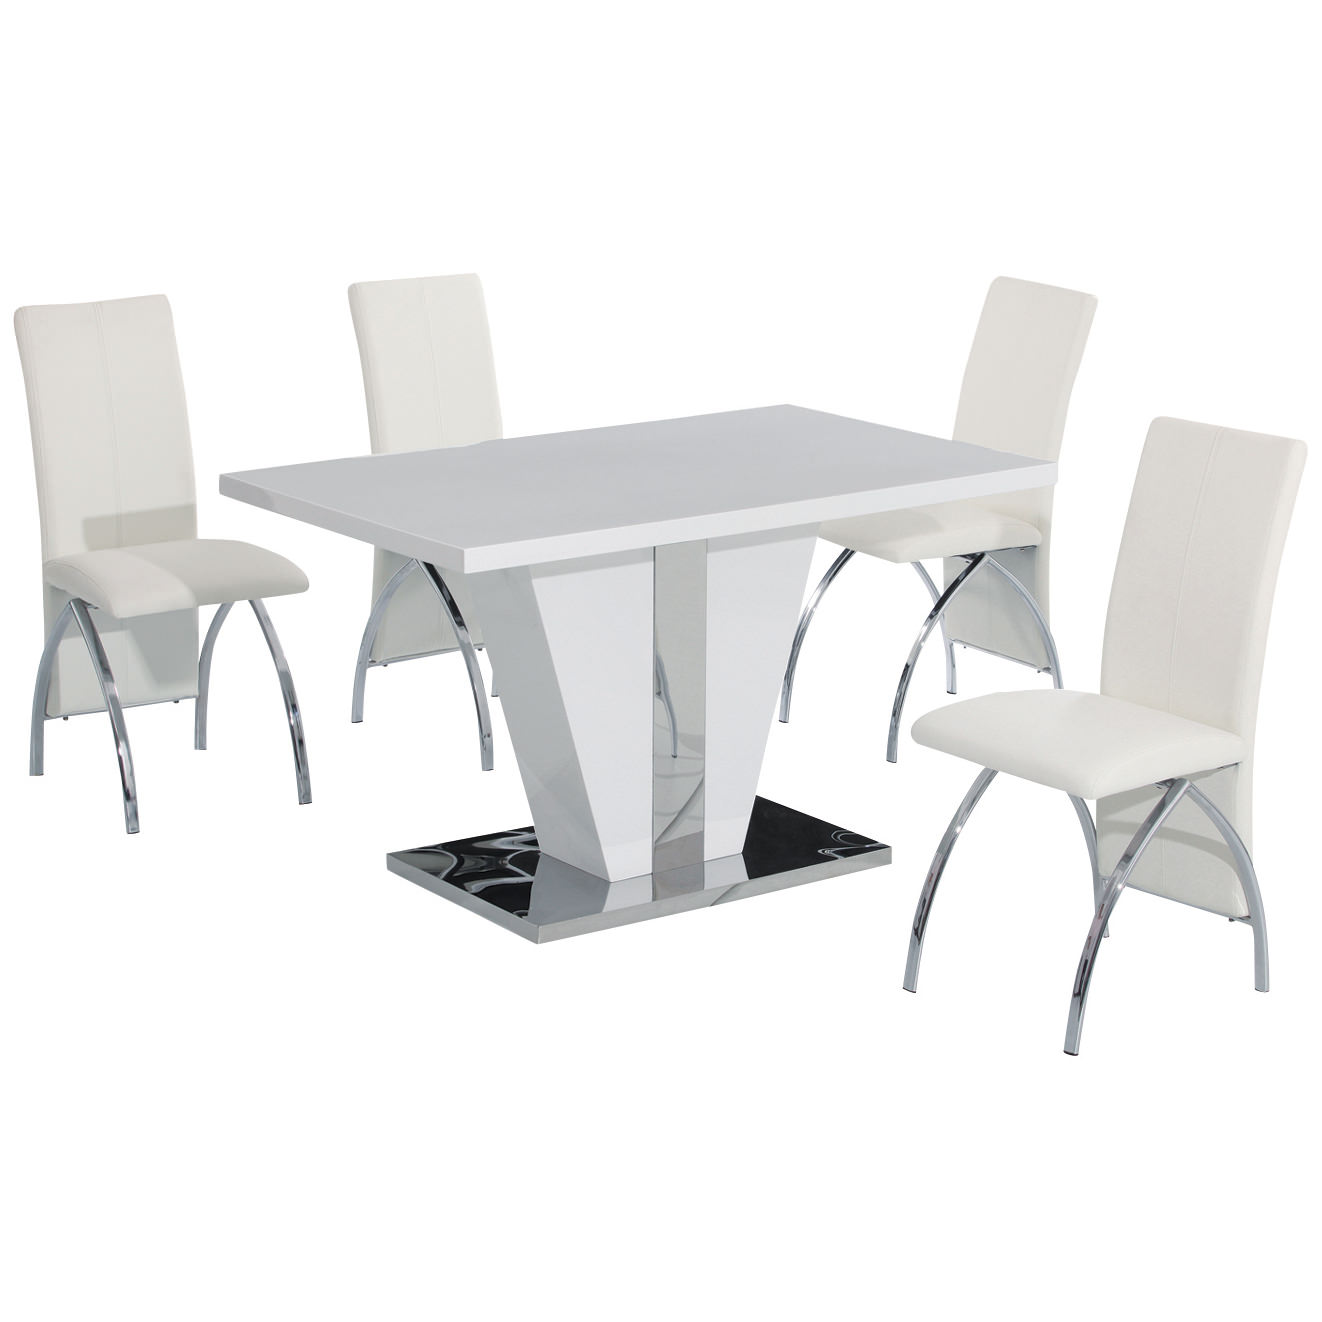 White And Black Dining Set: High Gloss Finish Dining Table And Chair Set With 4